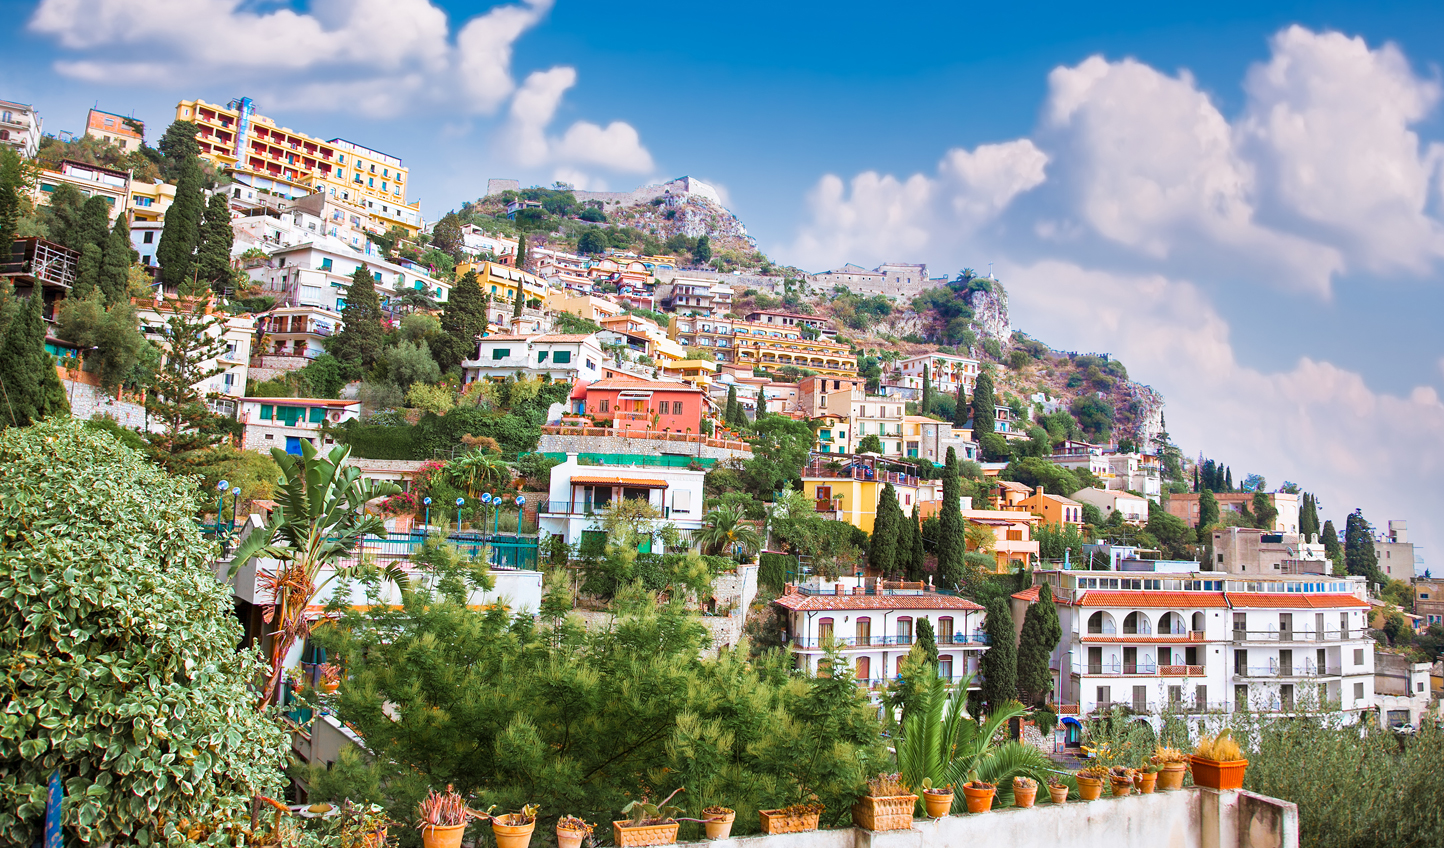 Arrive into the beautiful clifftop town of Taormina